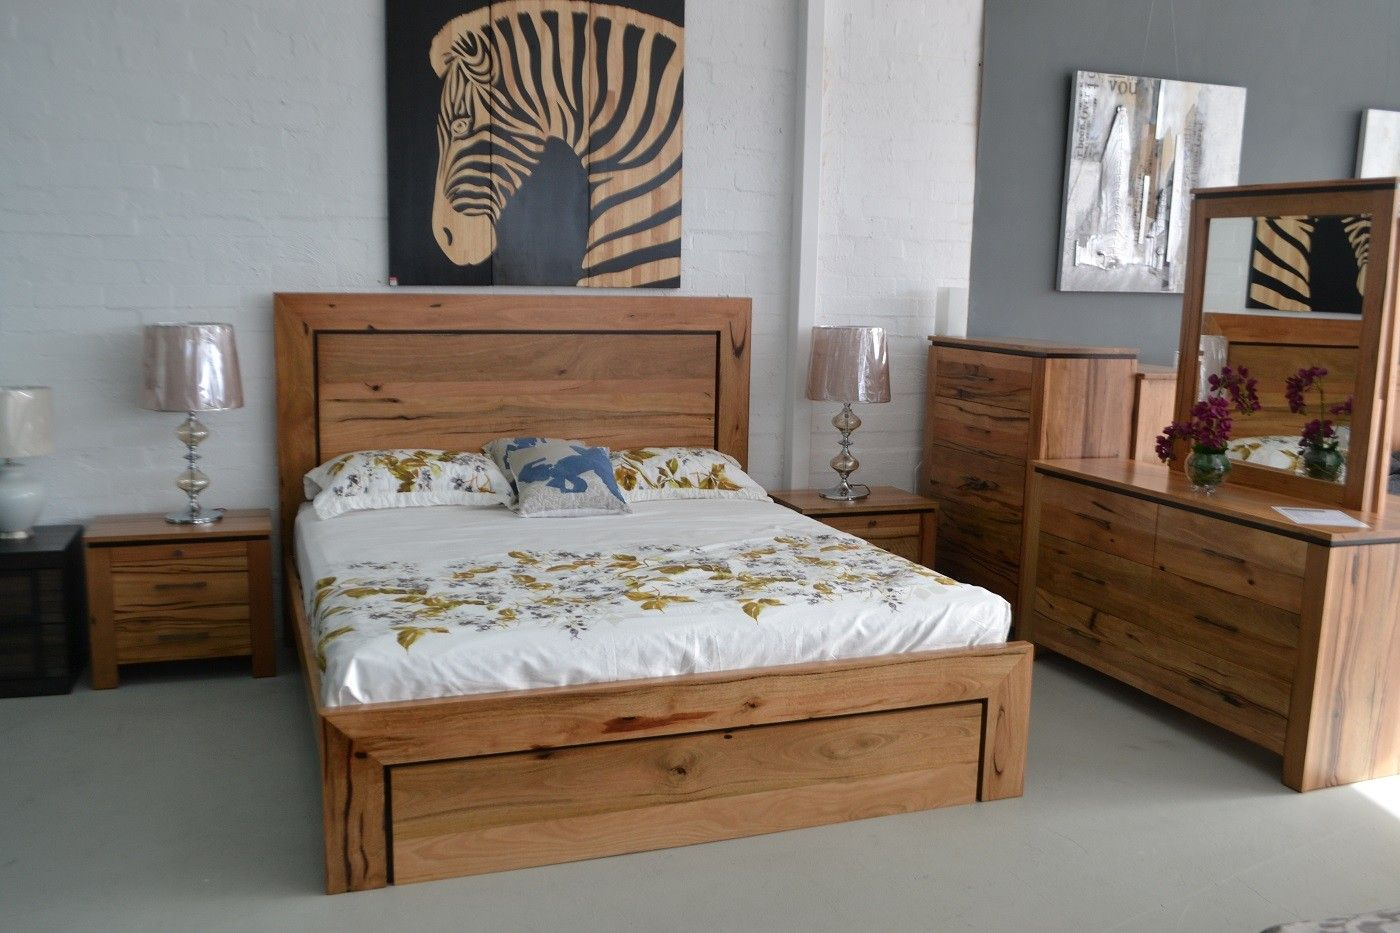 Solid Wood Bedroom Suites Bunbury Marri Timber Queen Bed Bedroom Trends Master Bedroom